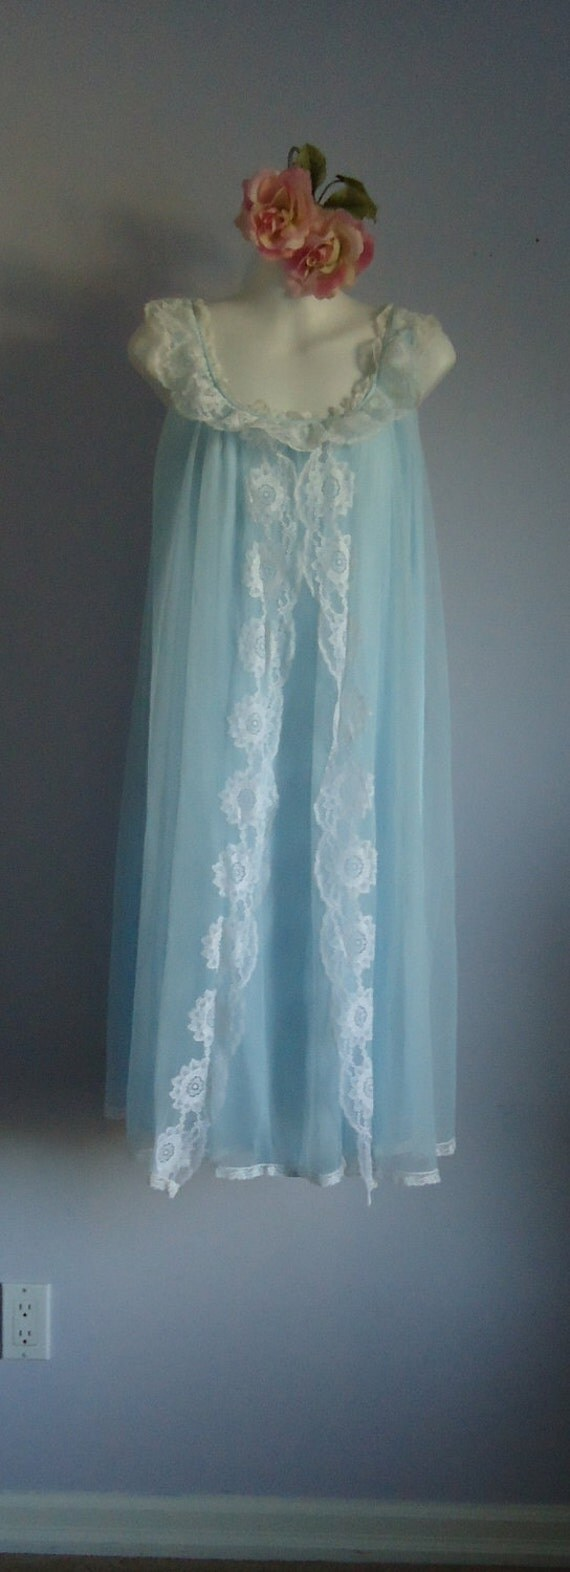 Vintage Nightgown, Vintage Nightgowns, 1960s Nightgown, Kayser, Light Blue Nightgown, Romantic, Wedding, Chiffon Nightgown, Lace, Lingerie